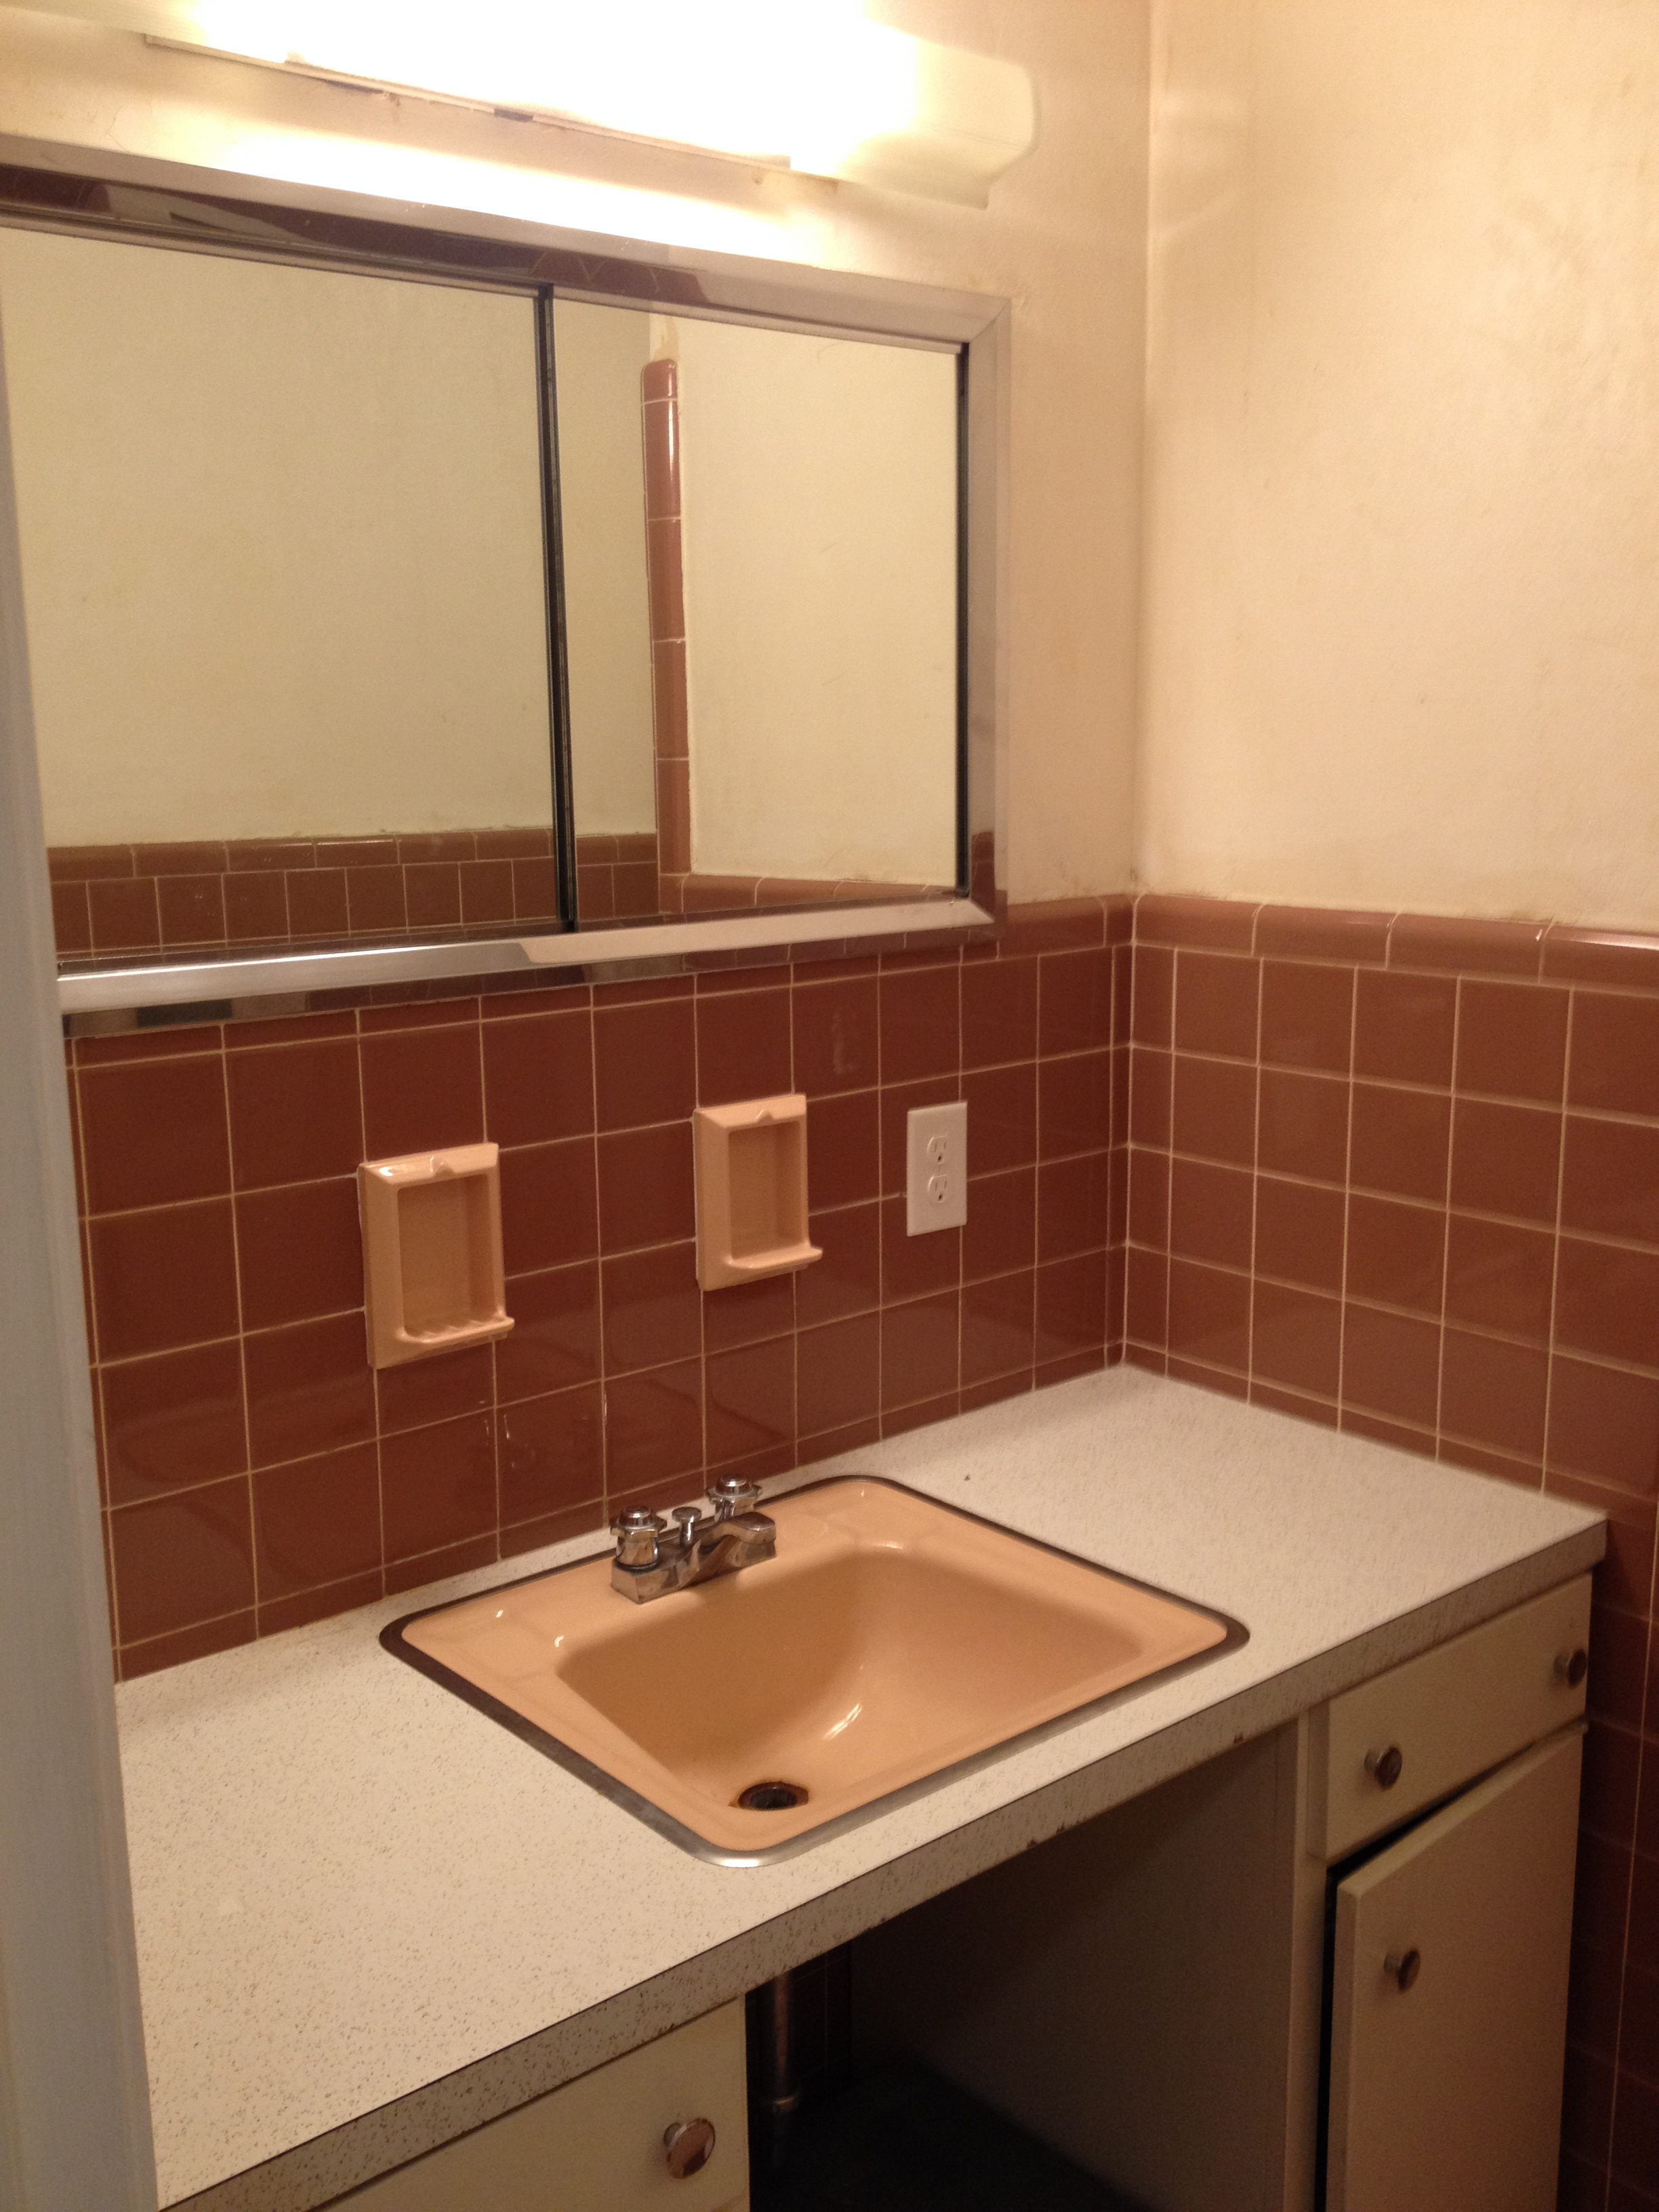 1950 s bathroom orangecountyfamily for Old bathroom tile replacement